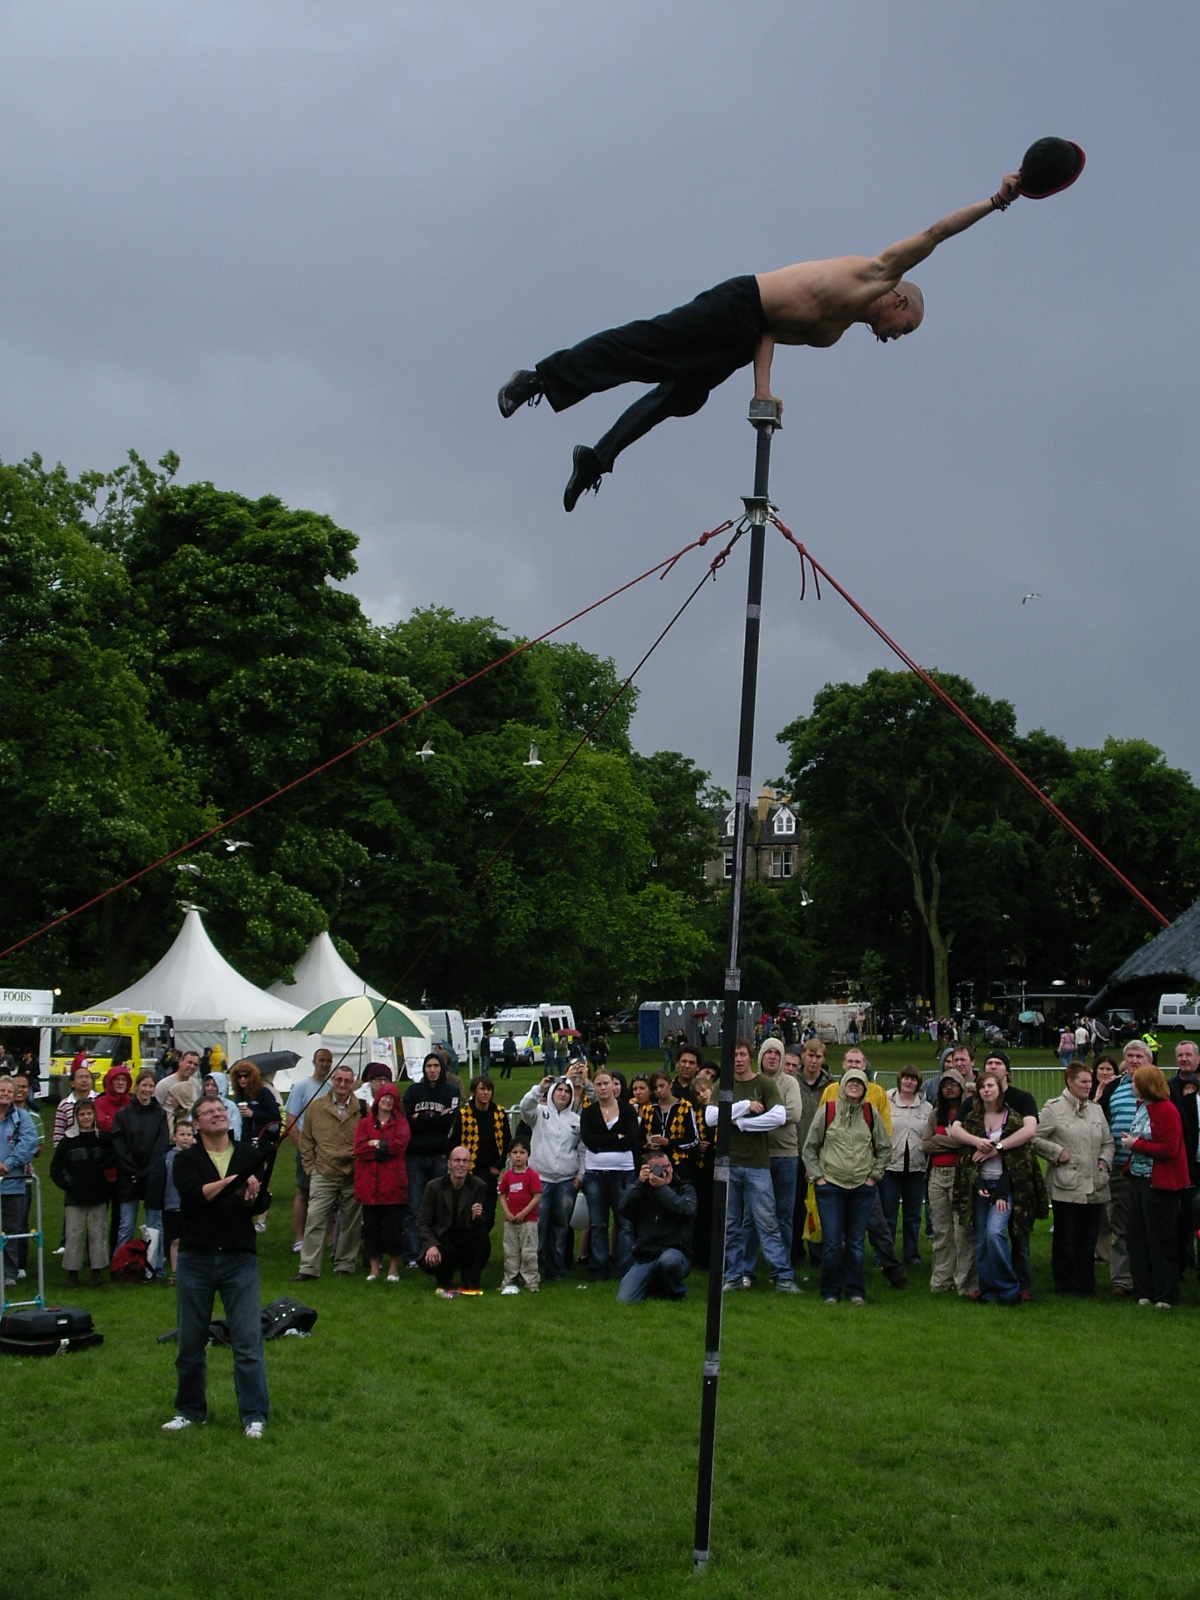 An acrobatic performer in the rain and sunlight (at the same time)